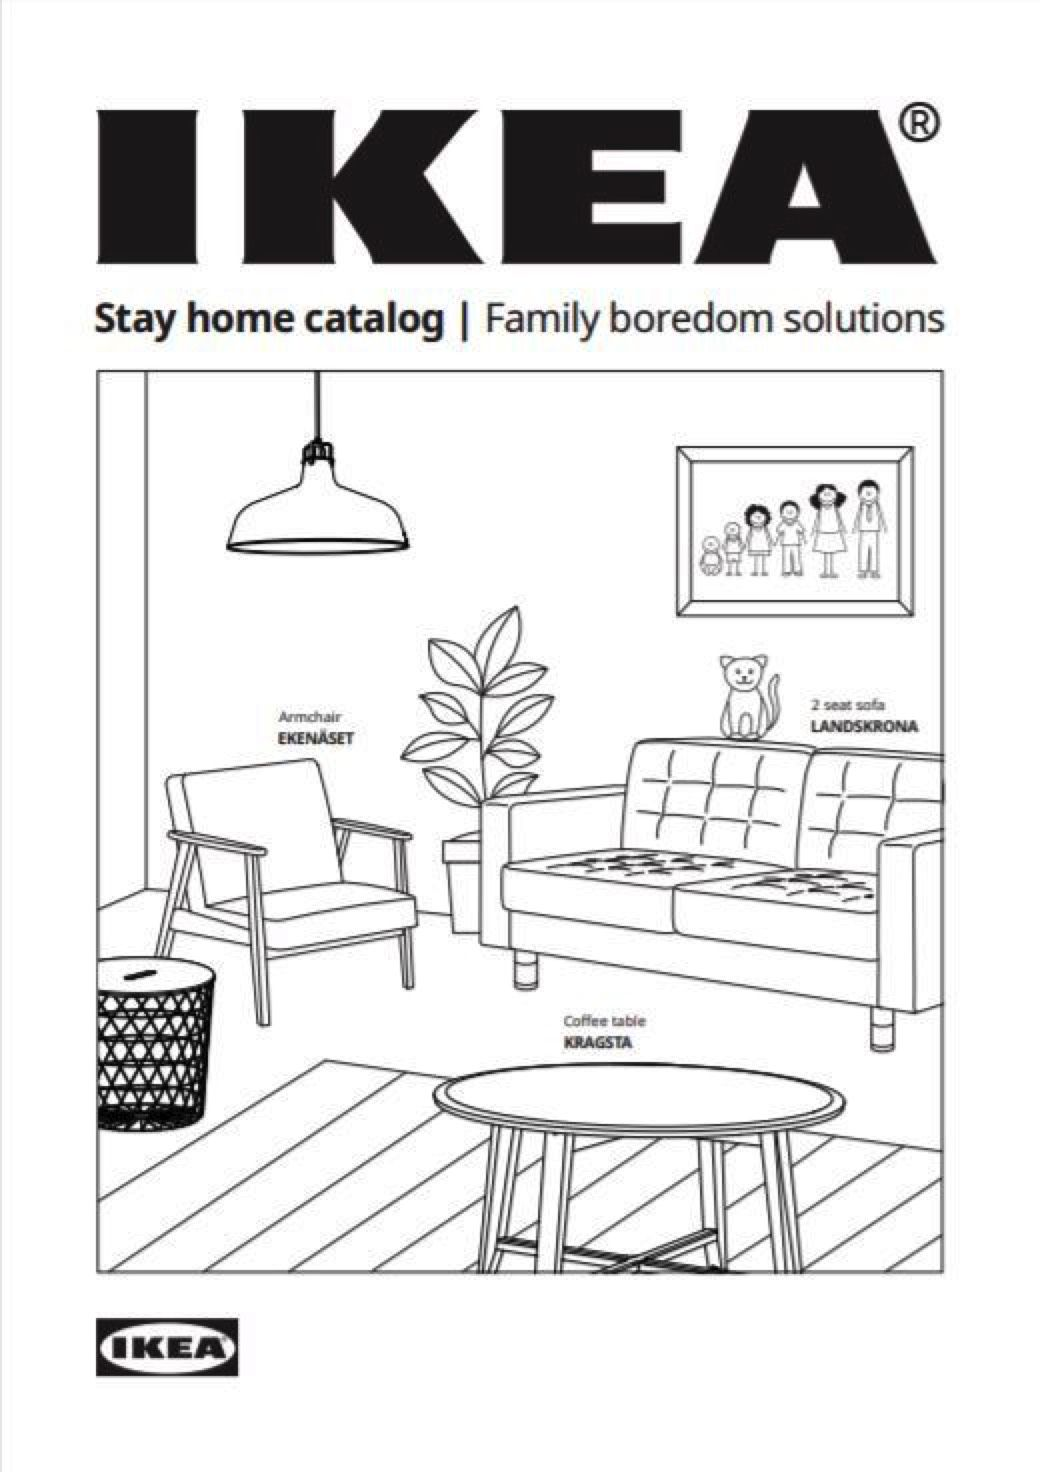 Pin by Cristina M on Favourite Ads in 2020 Home